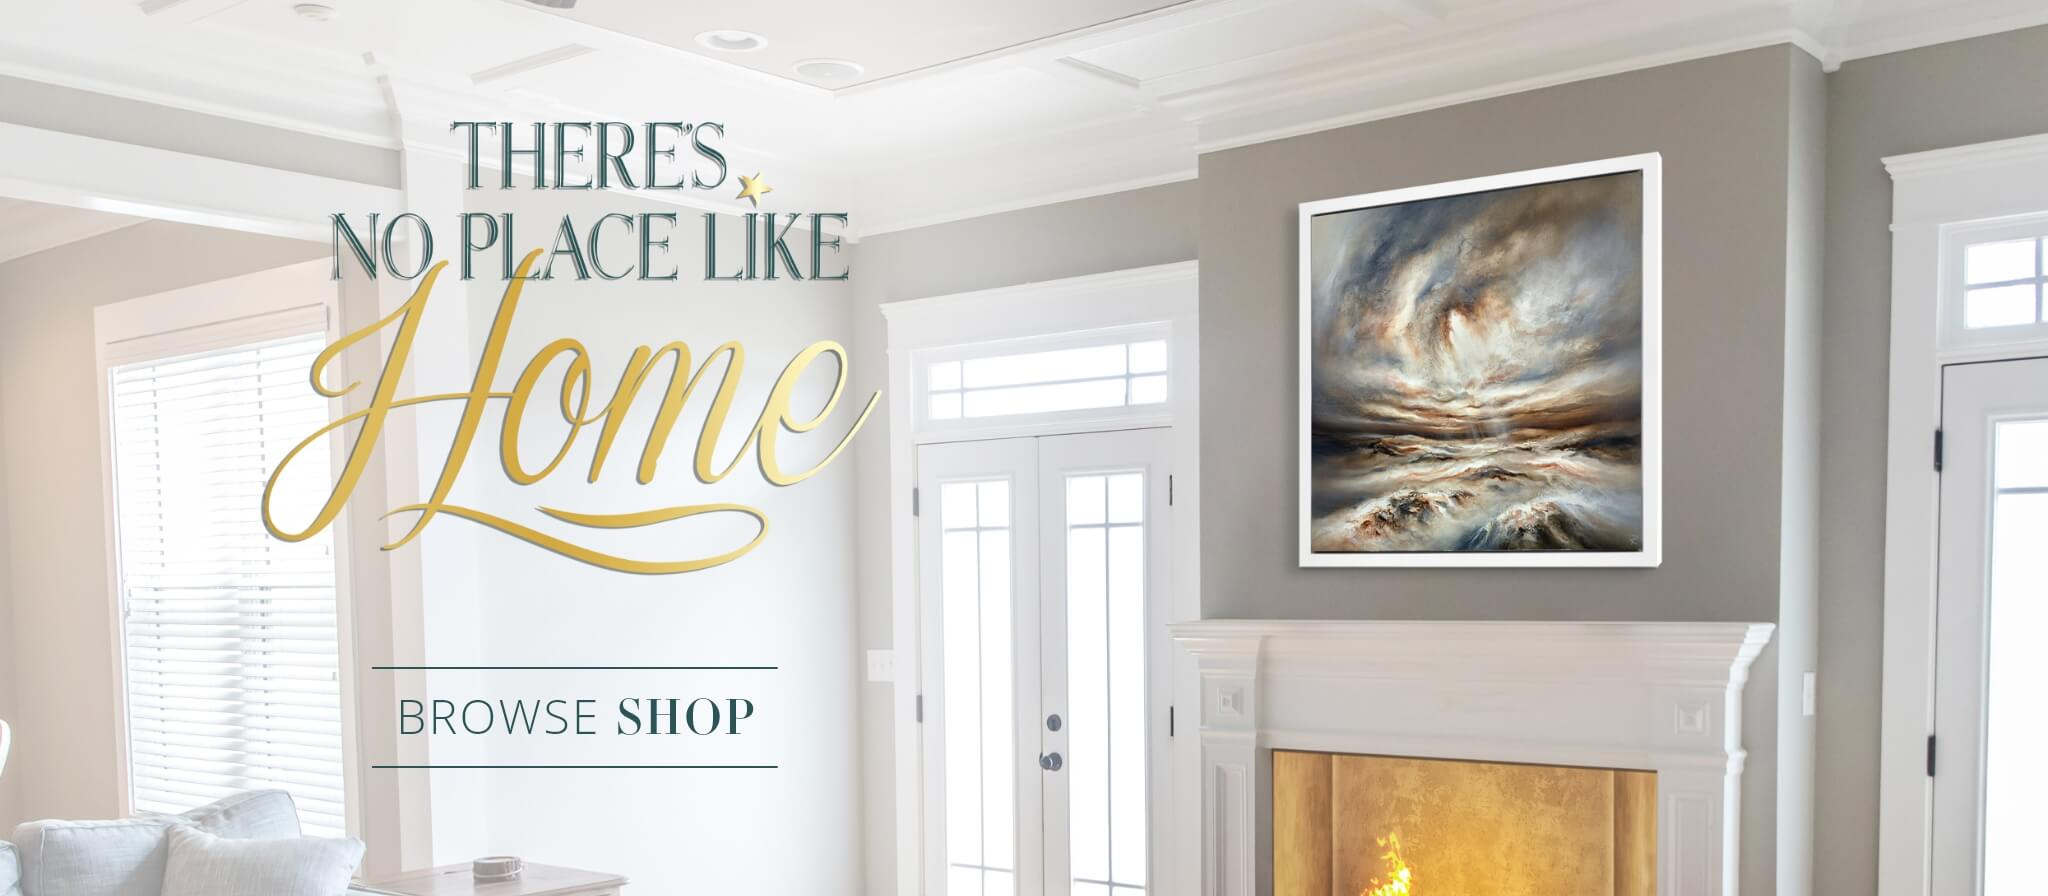 Take a look at our Christmas Collection from our award-winning artists .